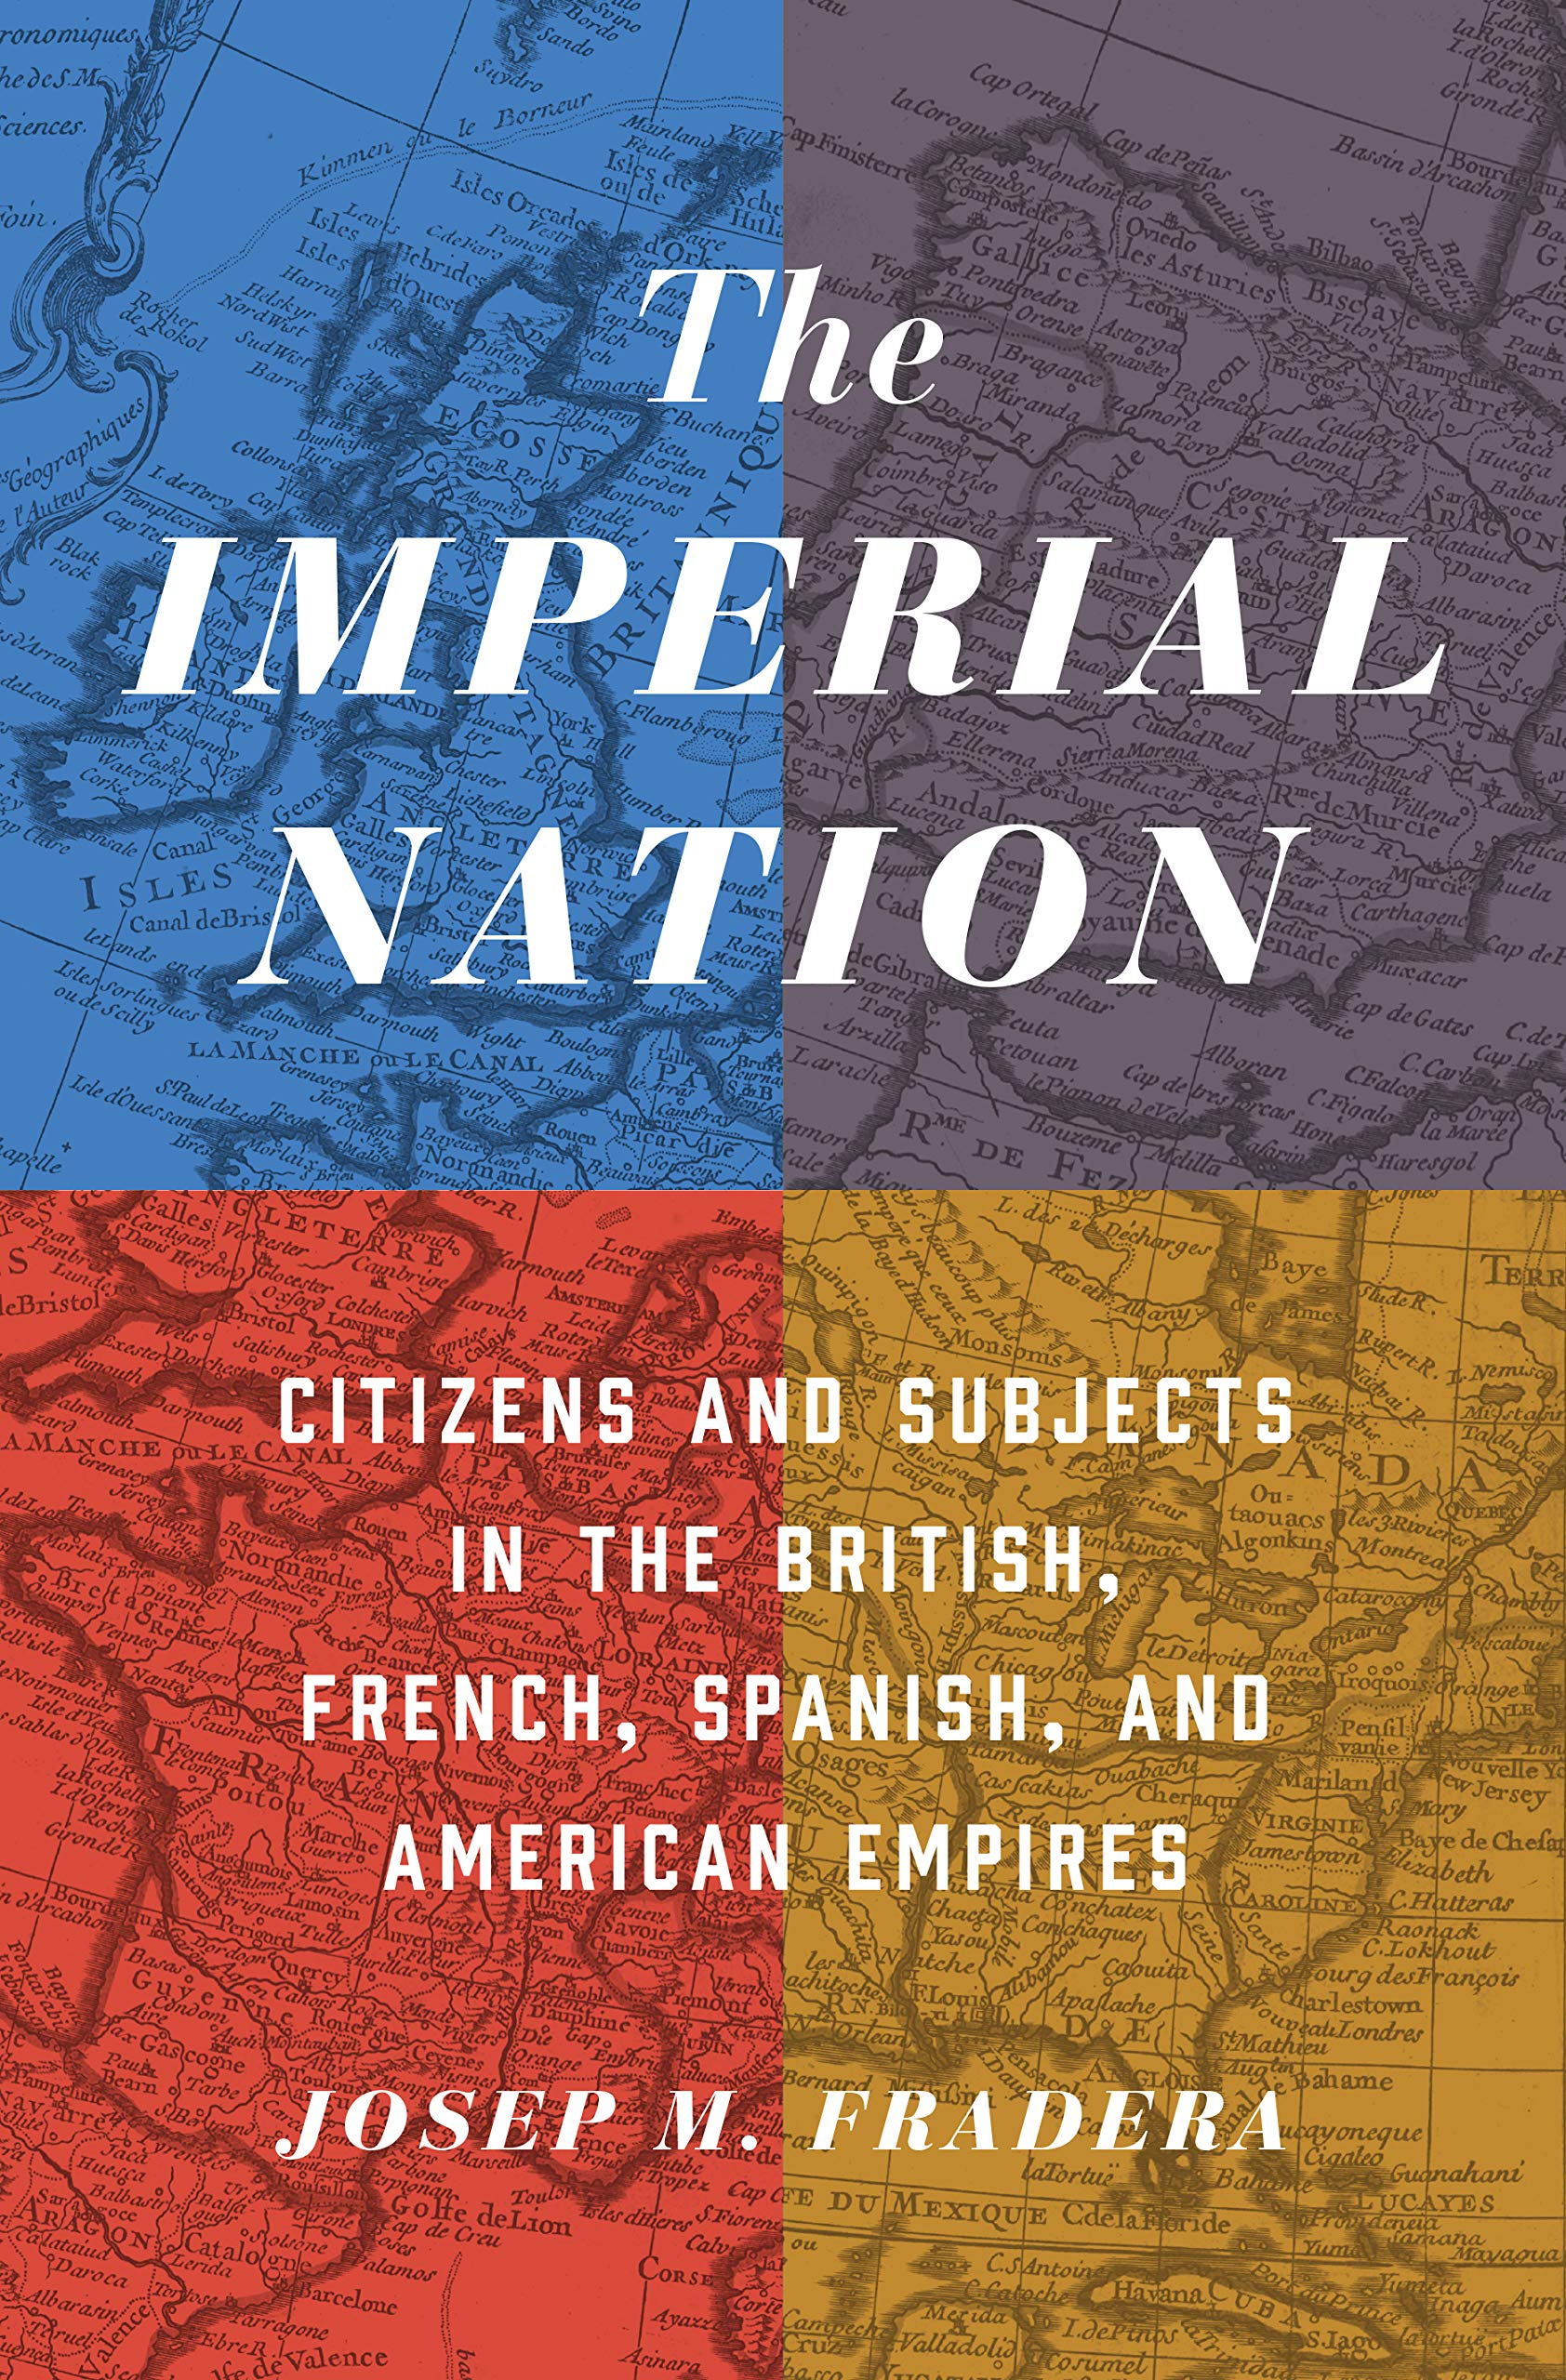 The Imperial Nation: Citizens and Subjects in the British, French, Spanish, and American Empires: Josep Fradera, Ruth MacKay: 9780691167459: Amazon.com: ...